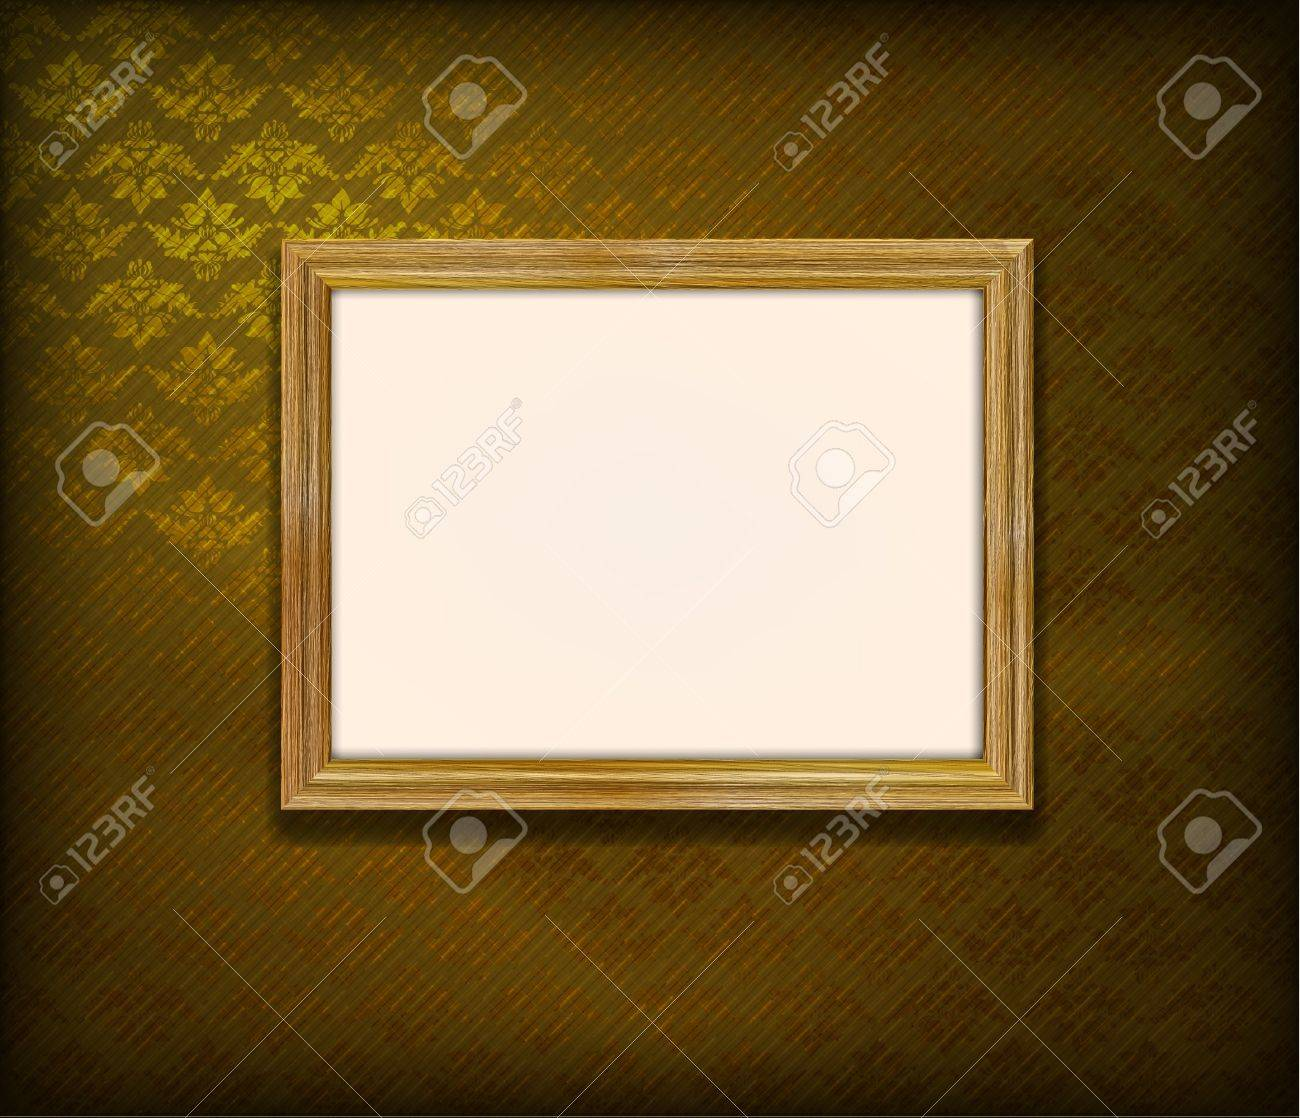 Old Wooden Picture Frames Old Wooden Frame For Photo on